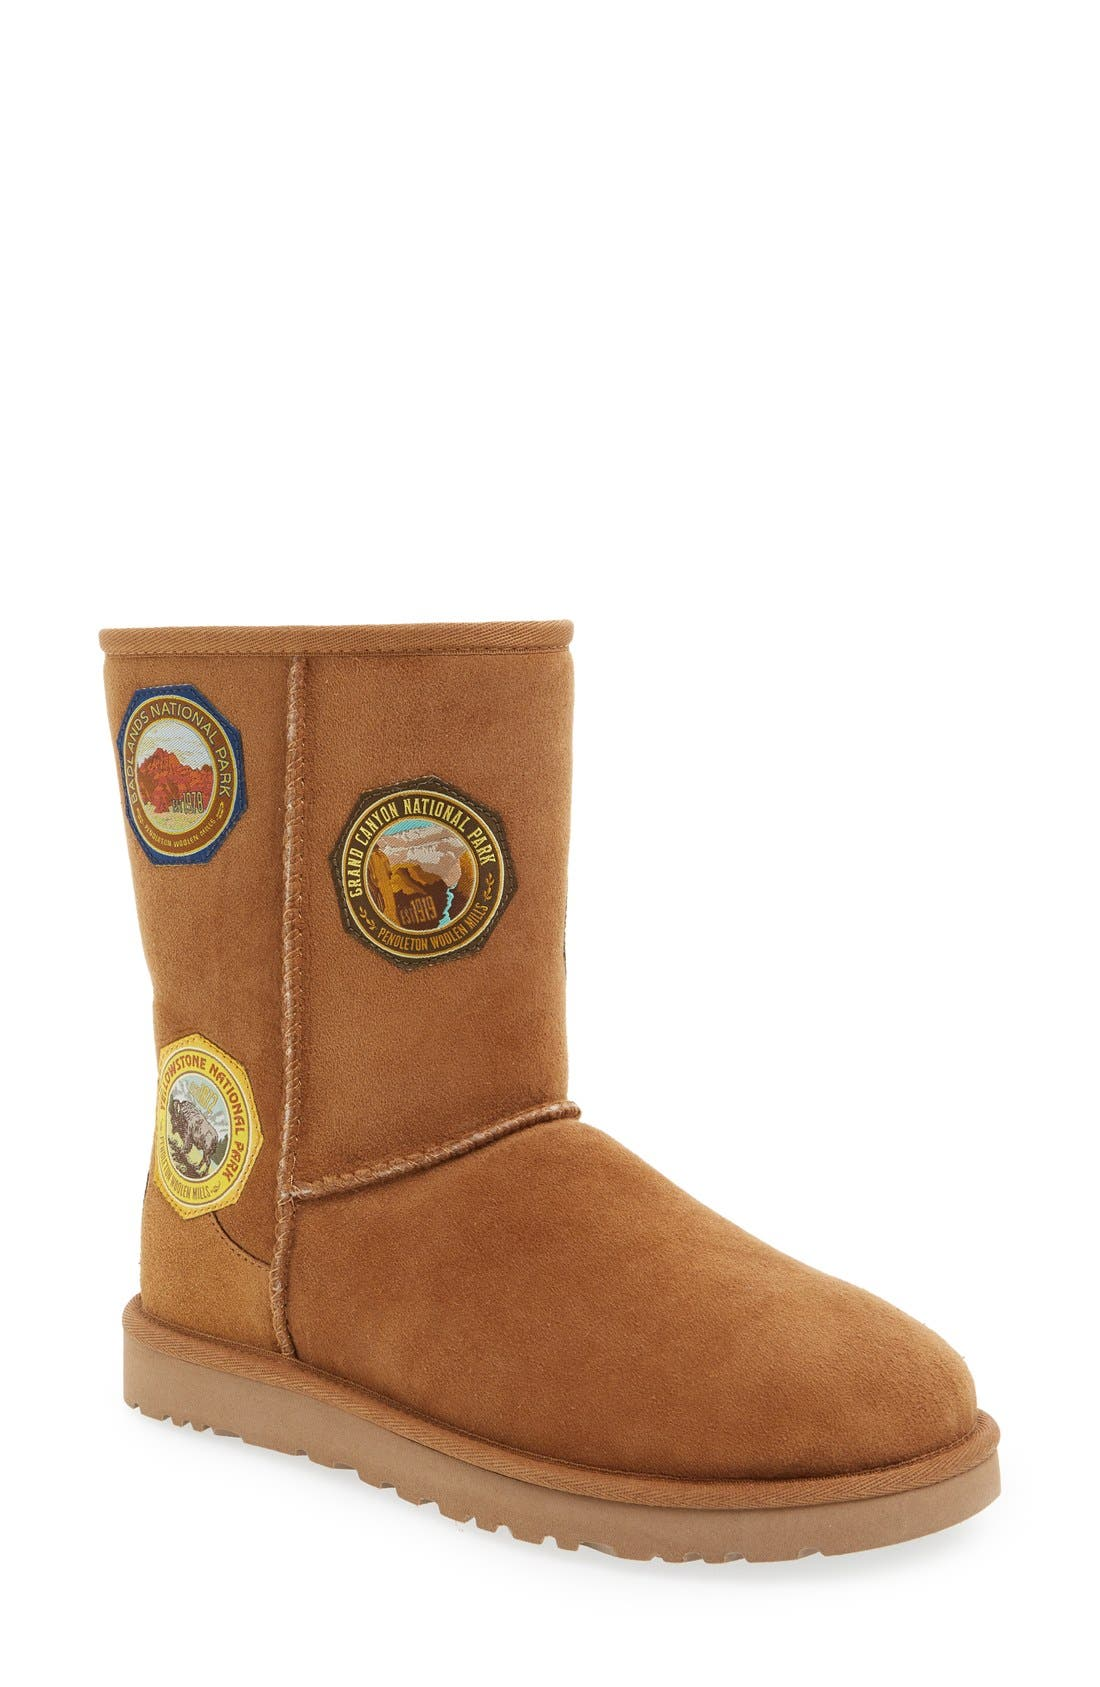 Main Image - UGG® x Pendleton 'Classic Short - Patch' Boot (Women)